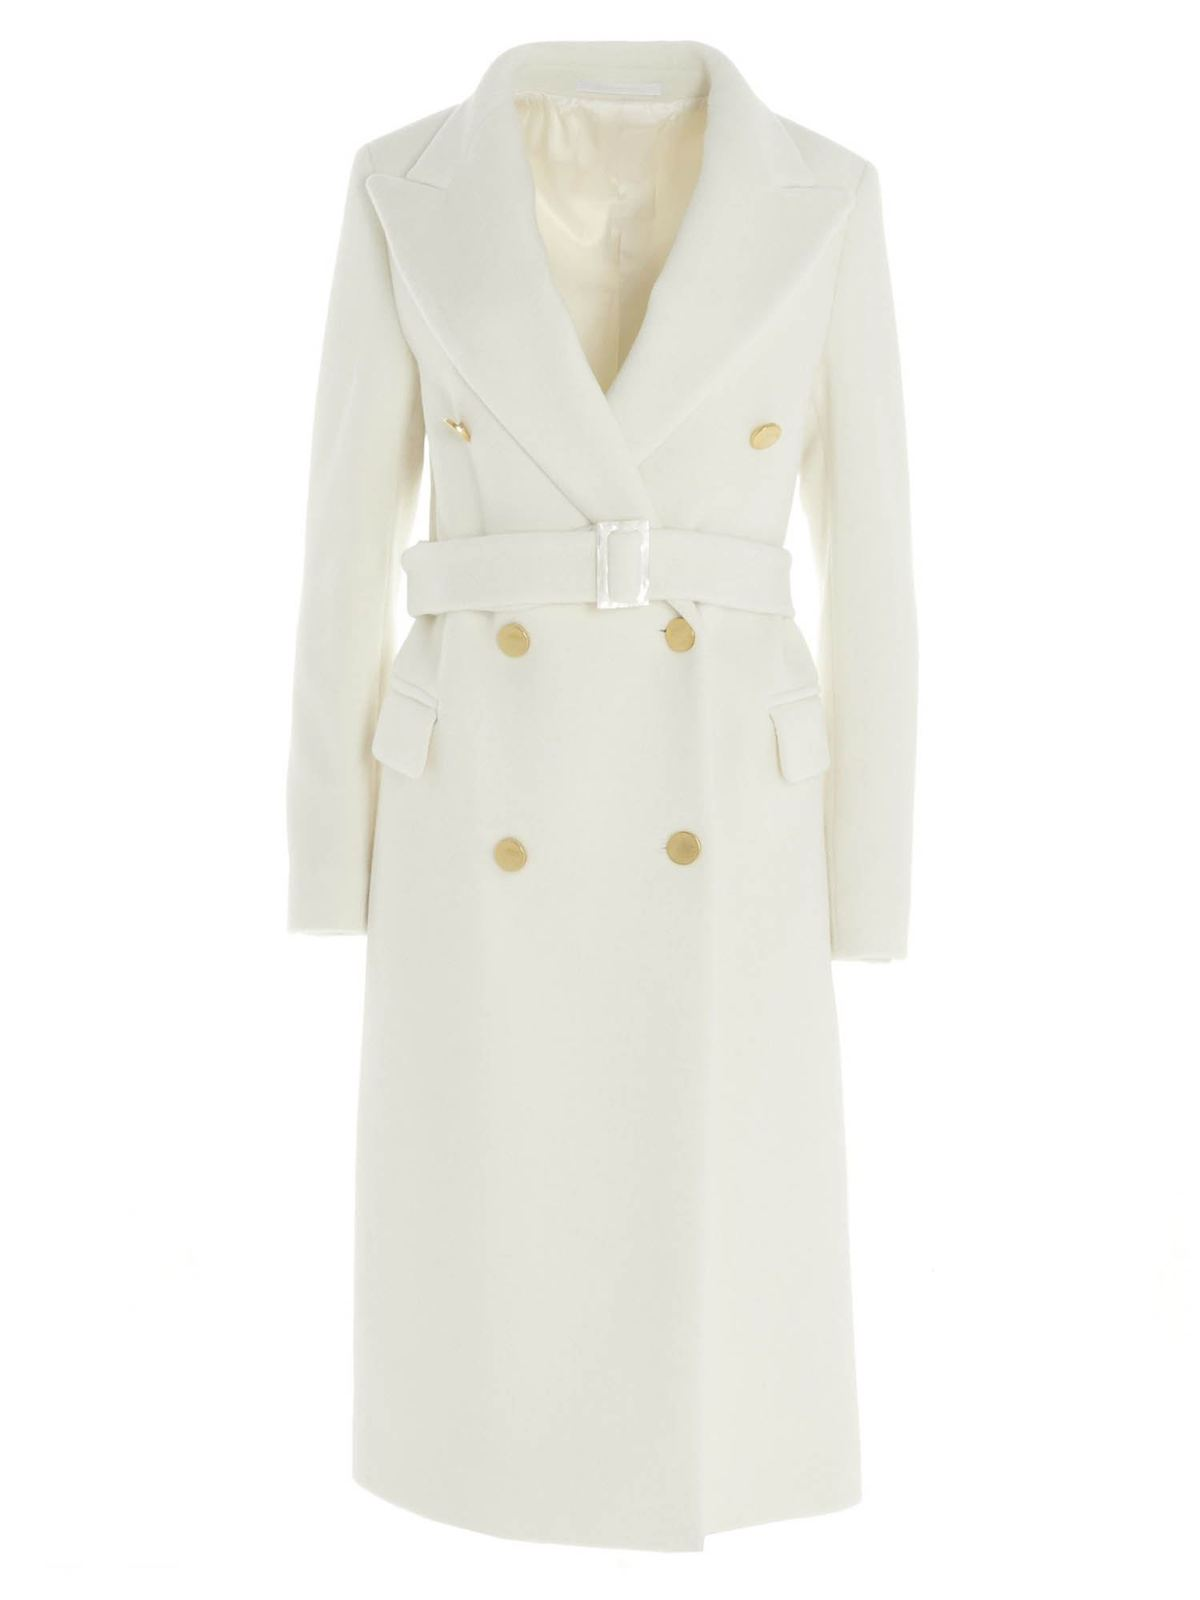 Tagliatore LONG COAT JOLE IN WHITE